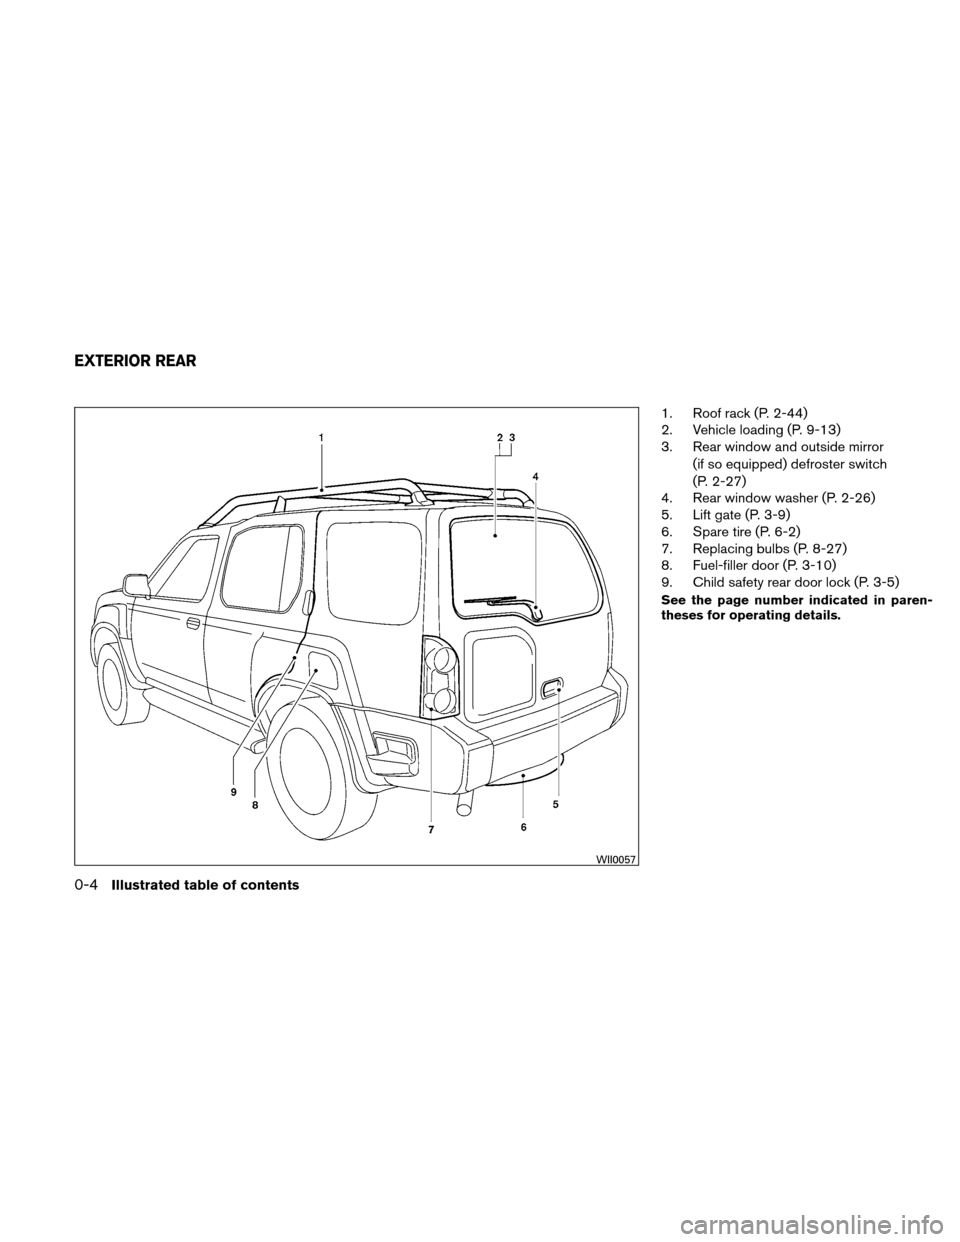 NISSAN XTERRA 2011 N50 / 2.G Owners Manual, Page 11